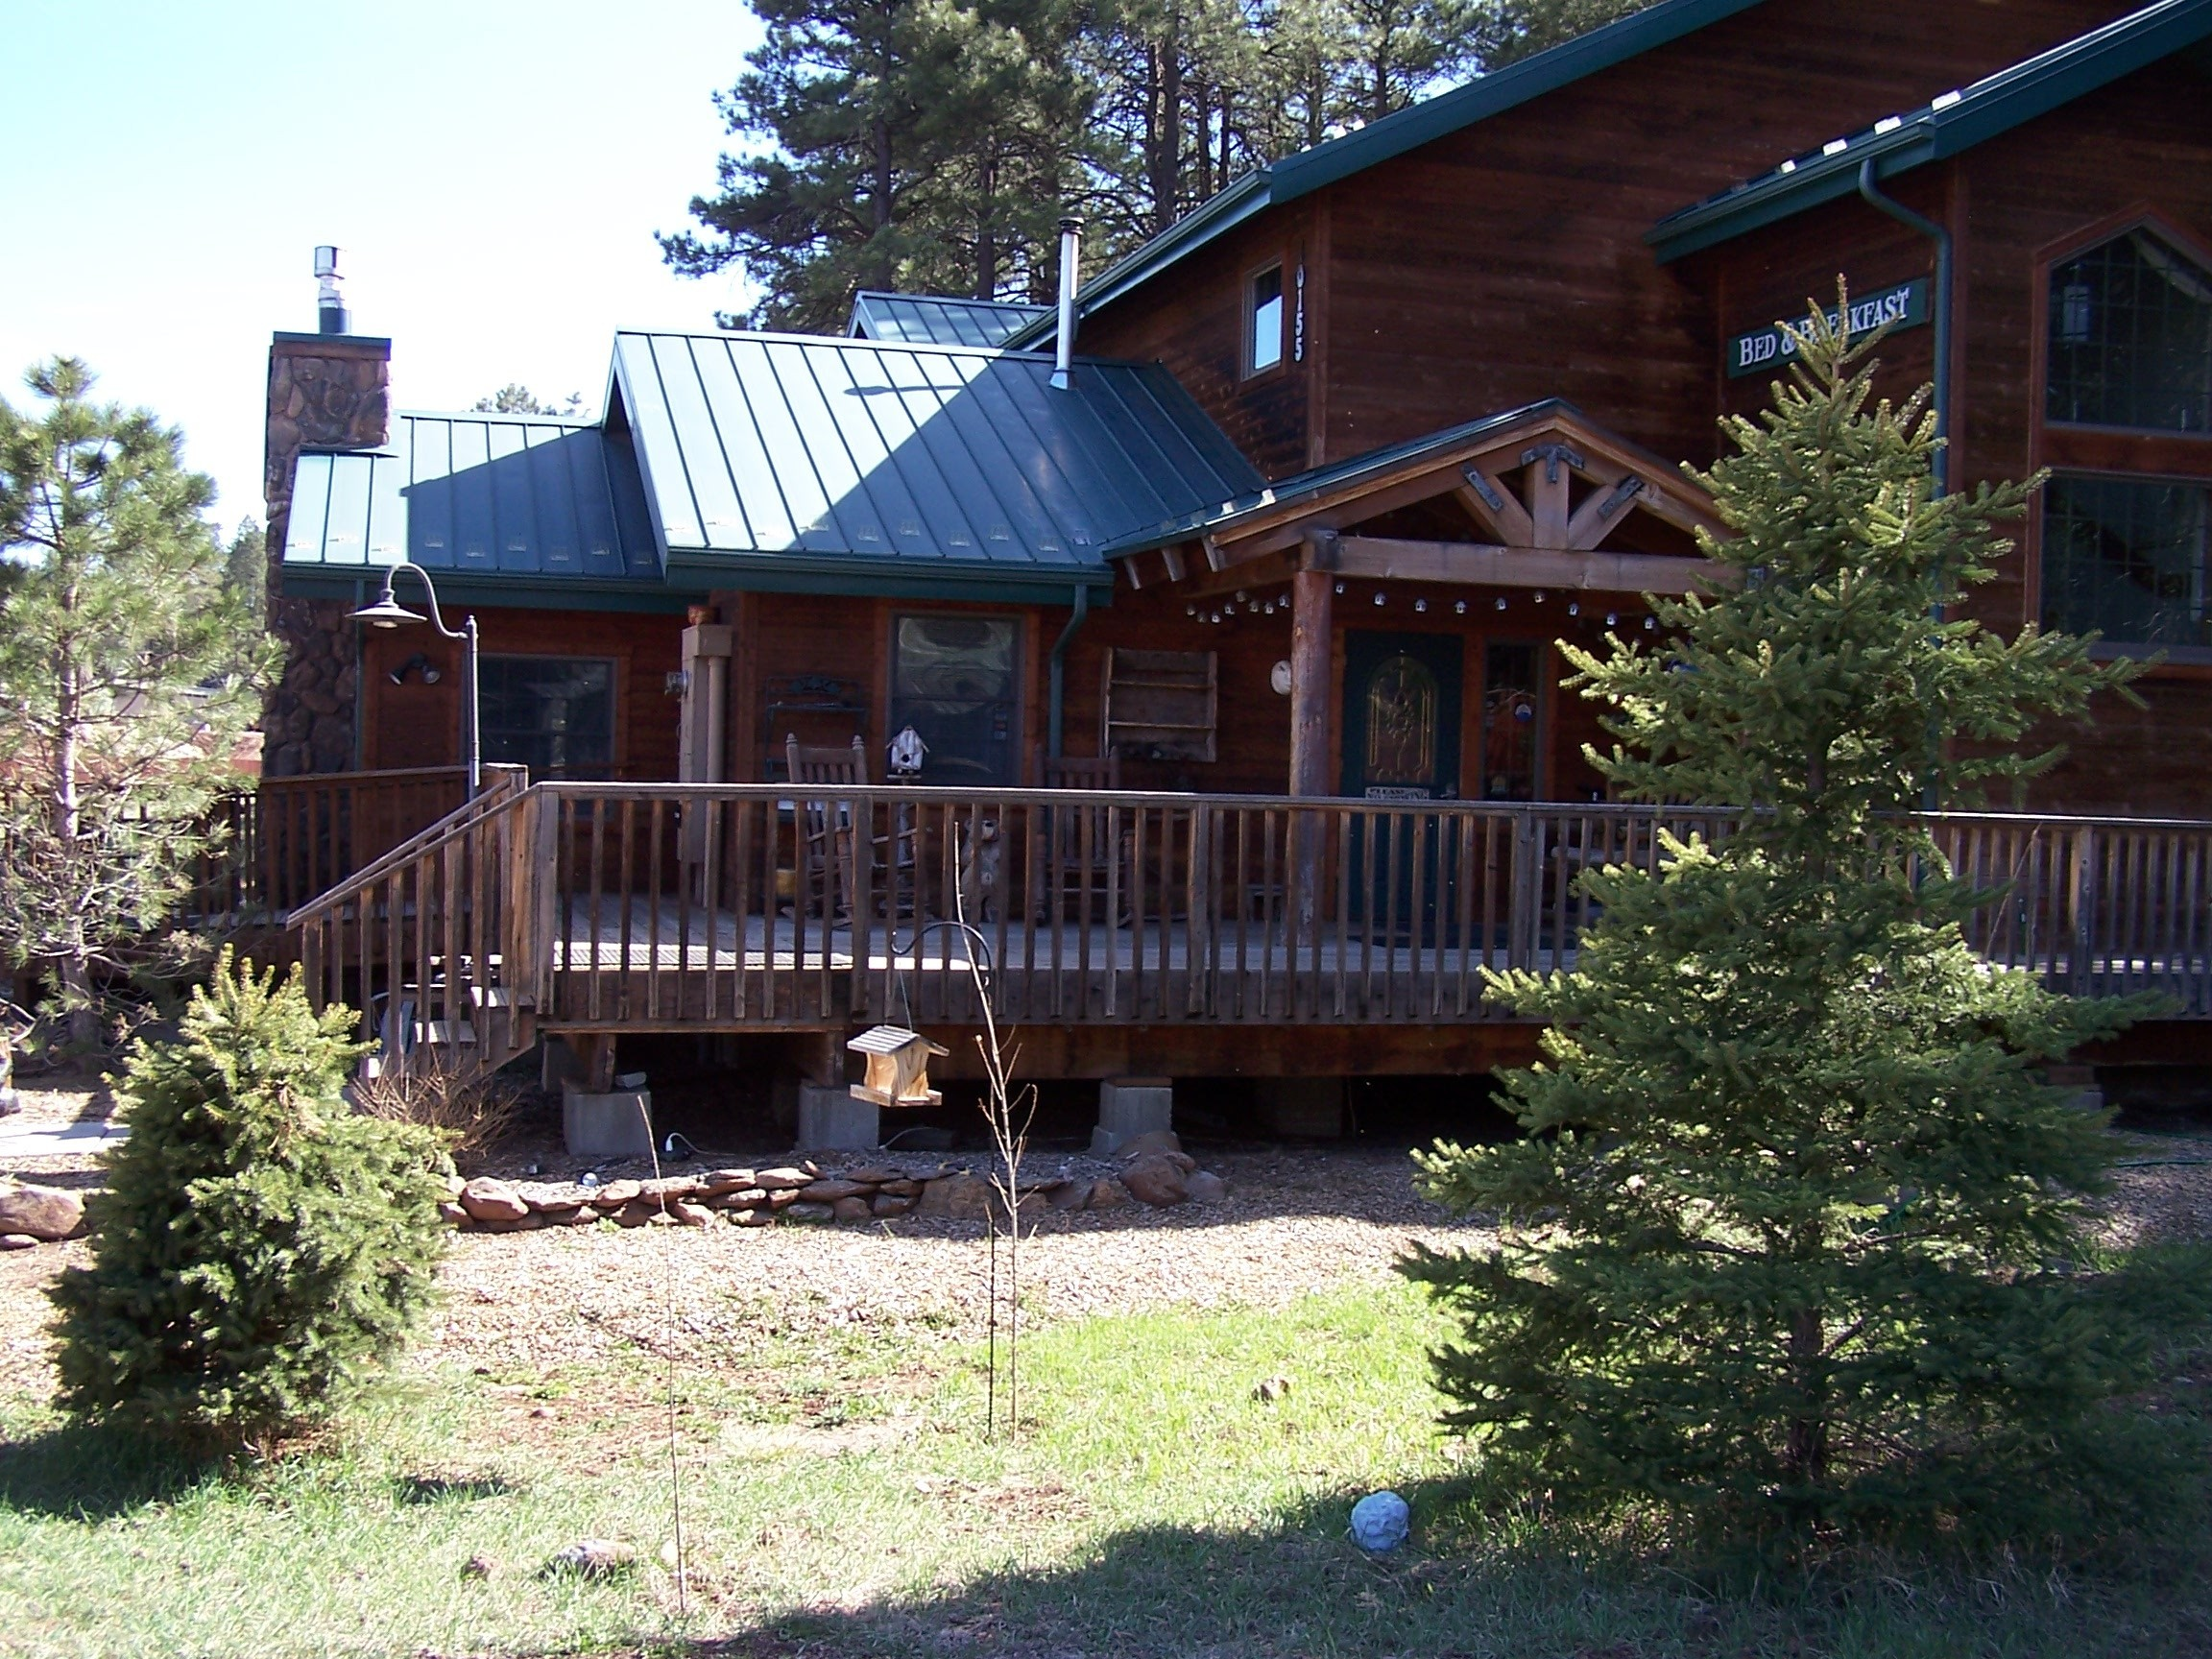 Abineau Lodge Bed and Breakfast